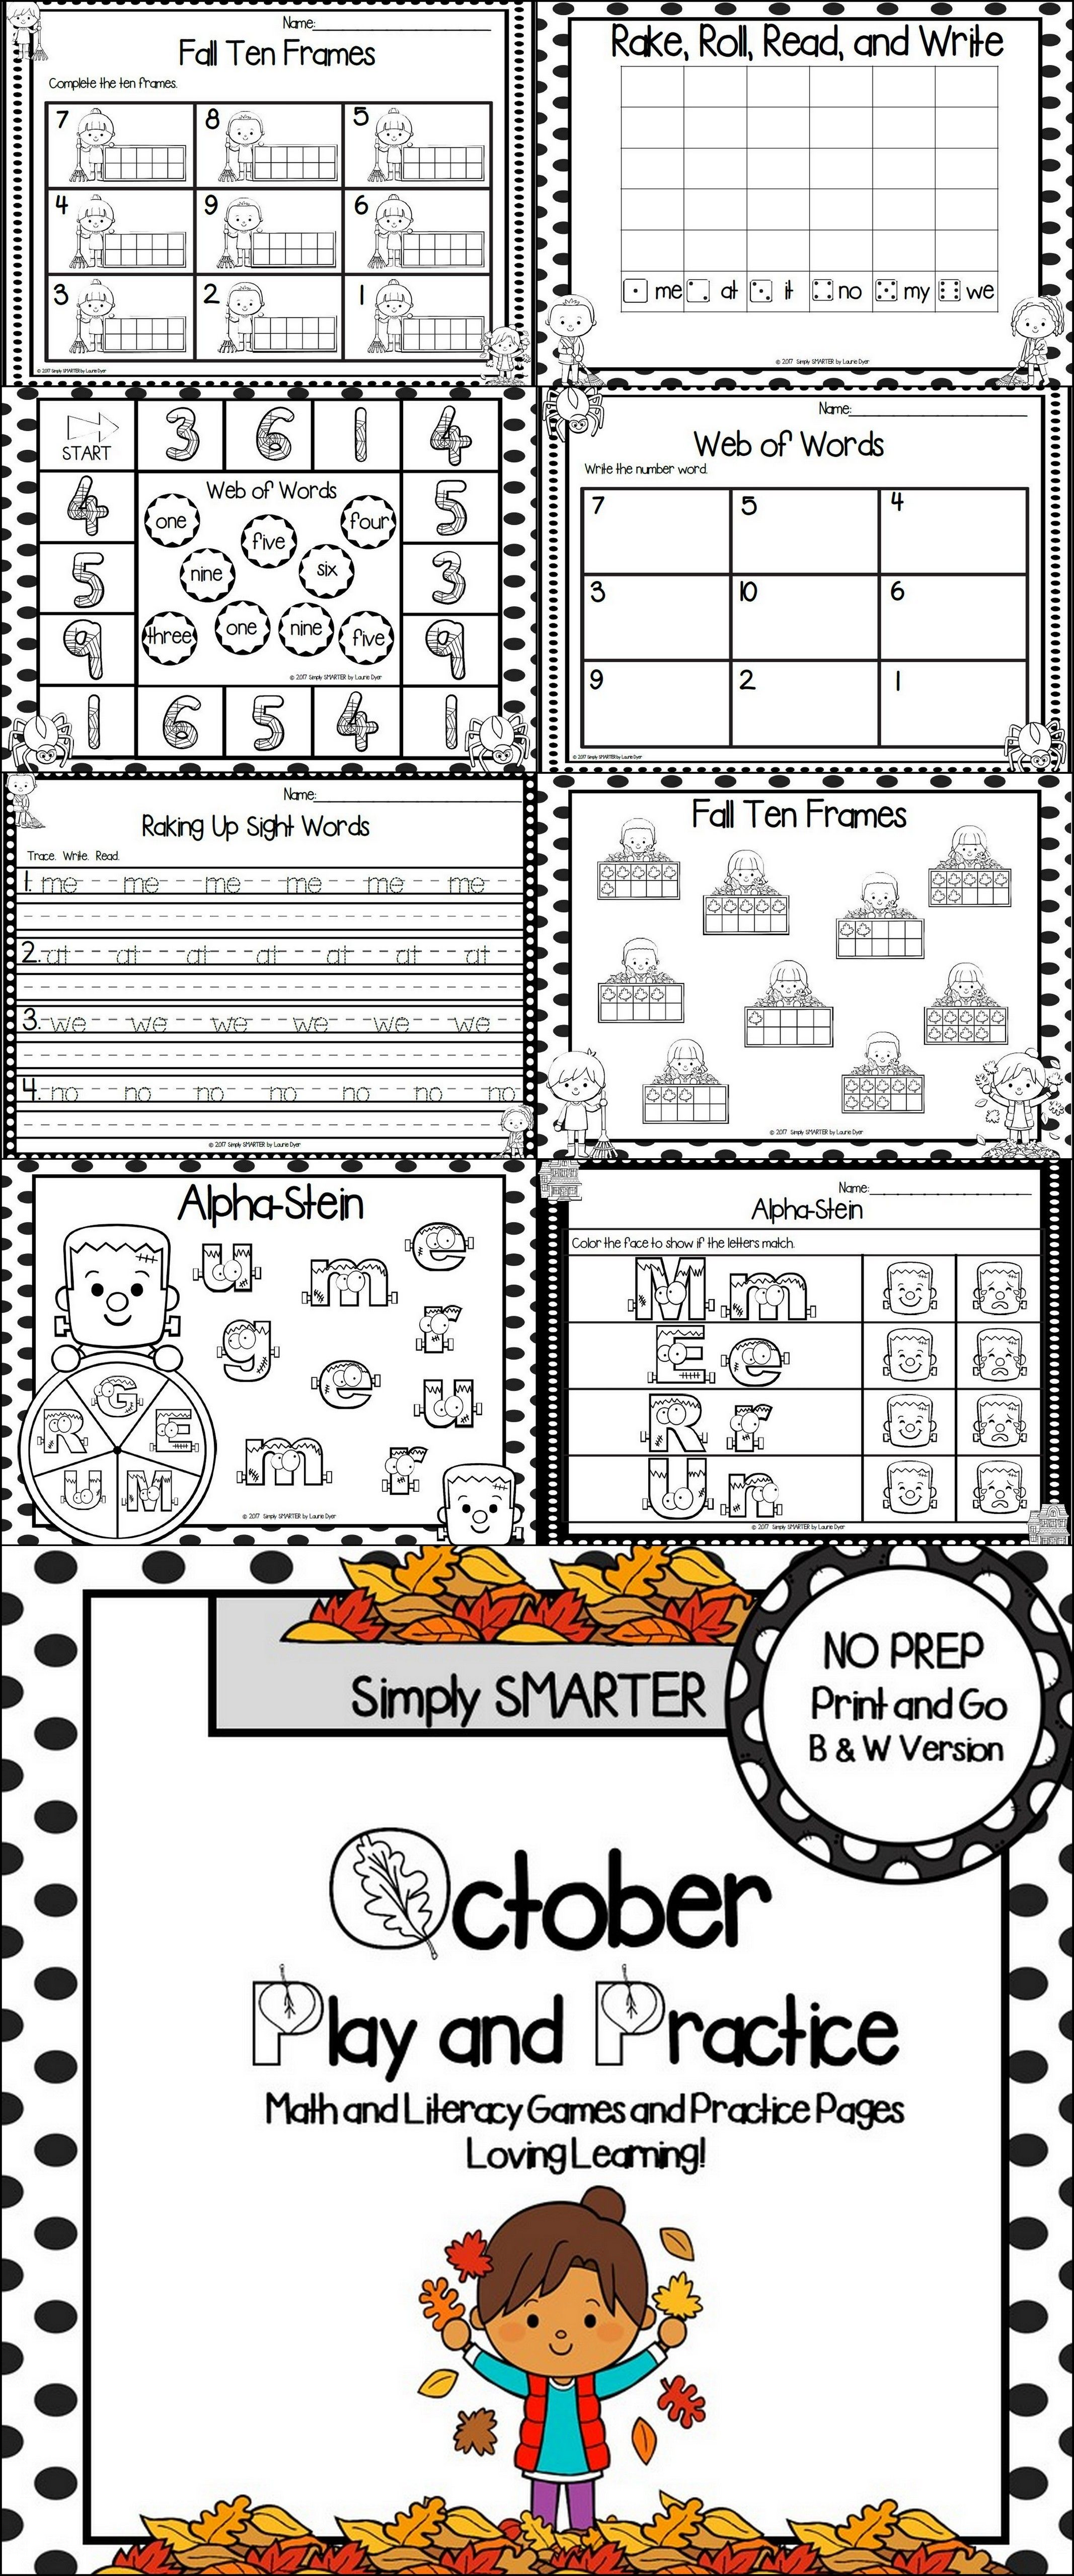 October Play And Practice No Prep Math And Literacy Games